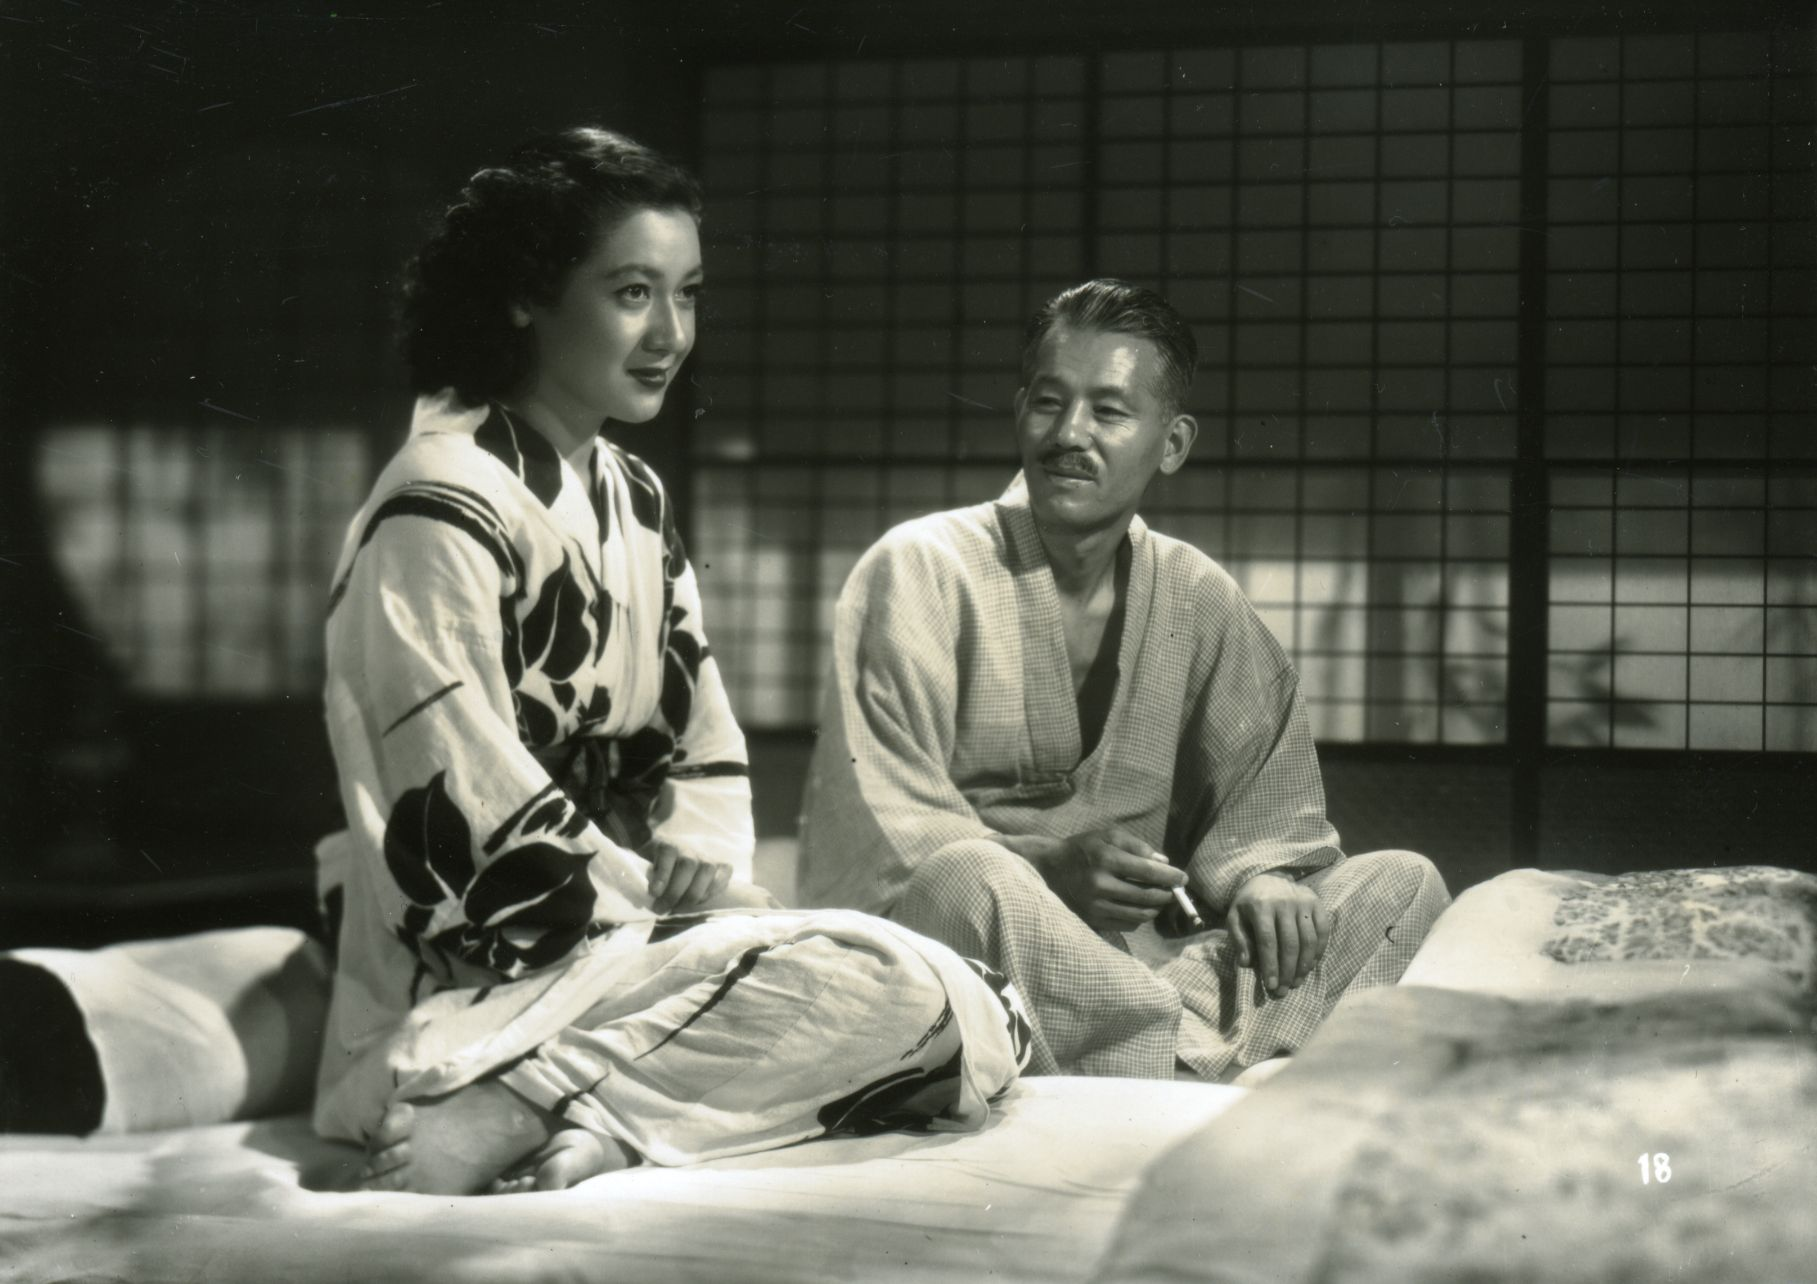 Setsuko Hara as Noriko and Chishū Ryū as Shukichi in Yasujirō Ozu's <em>Late Spring</em>.